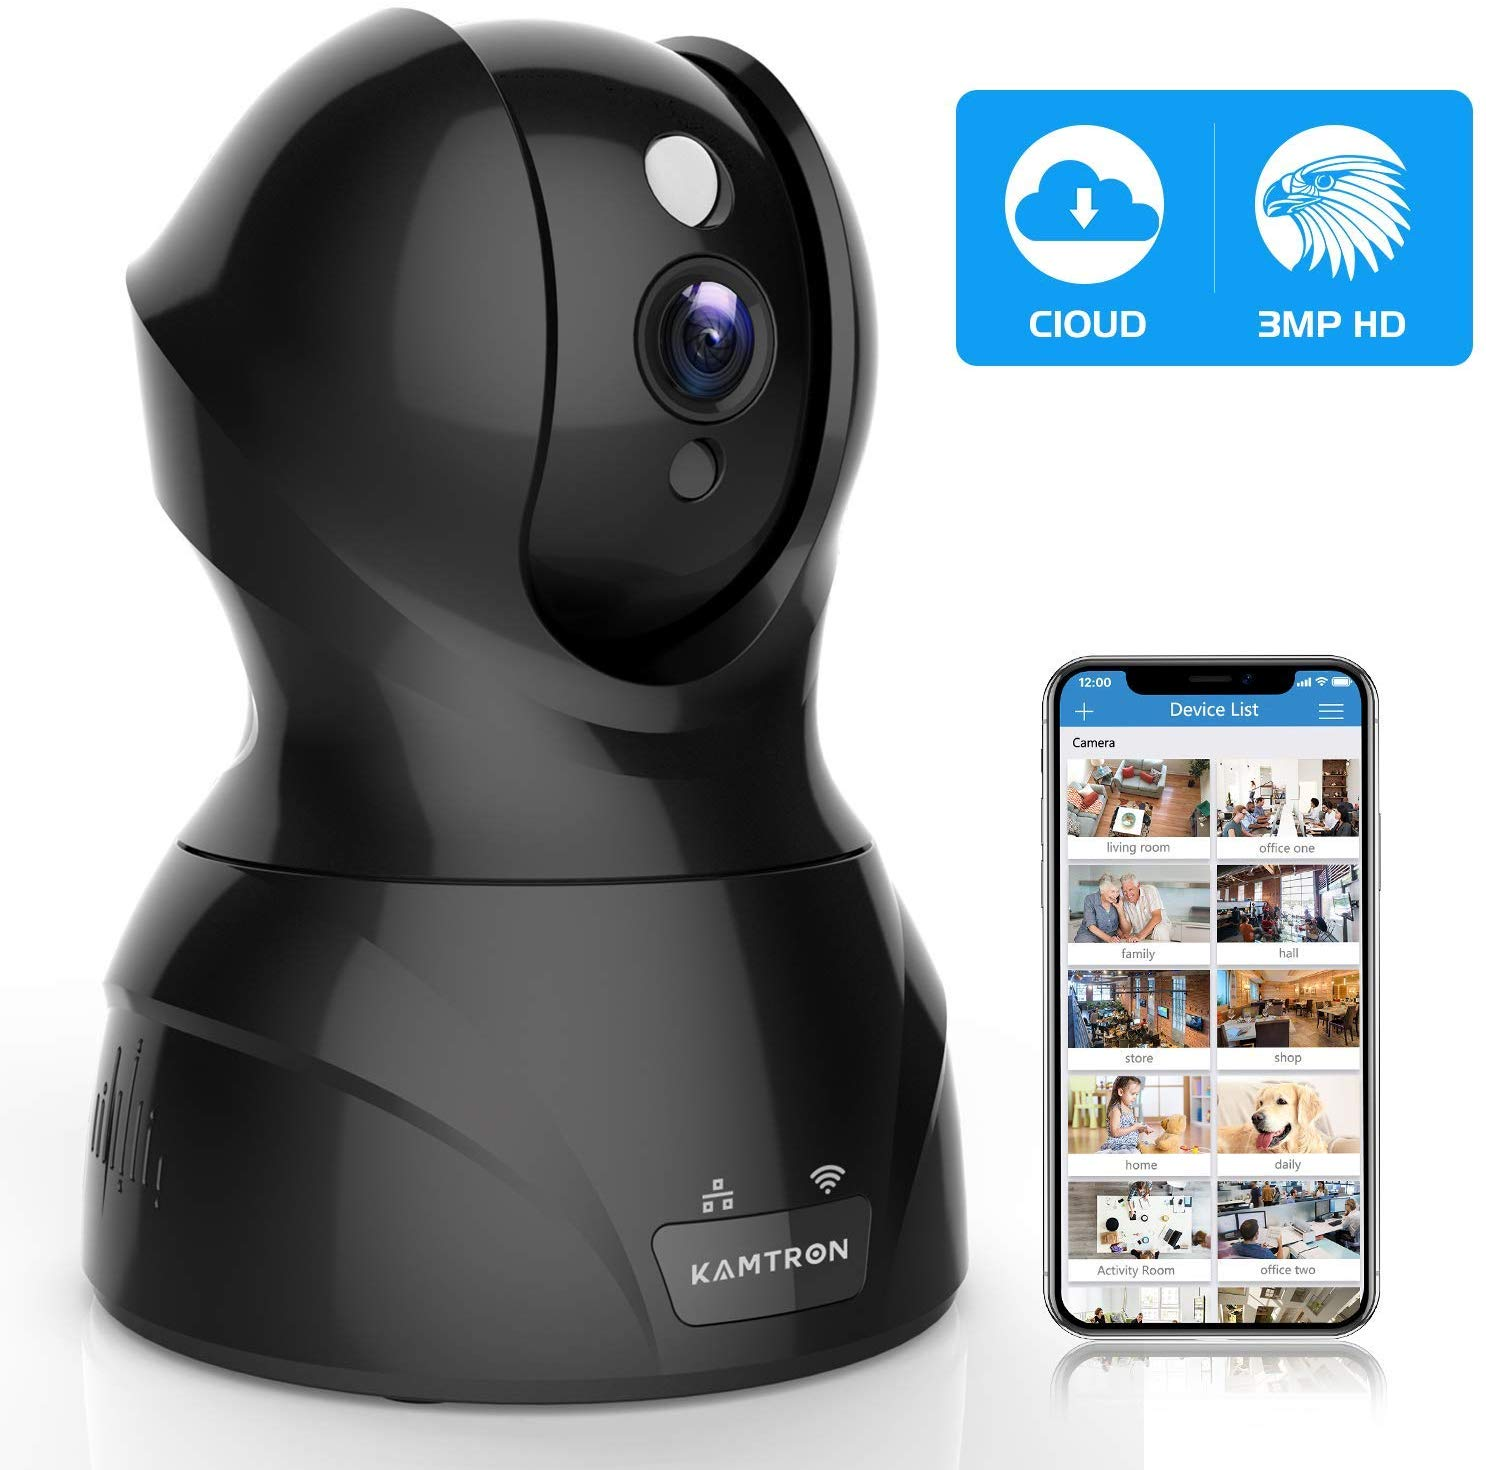 KAMTRON 1536P Indoor Security Camera